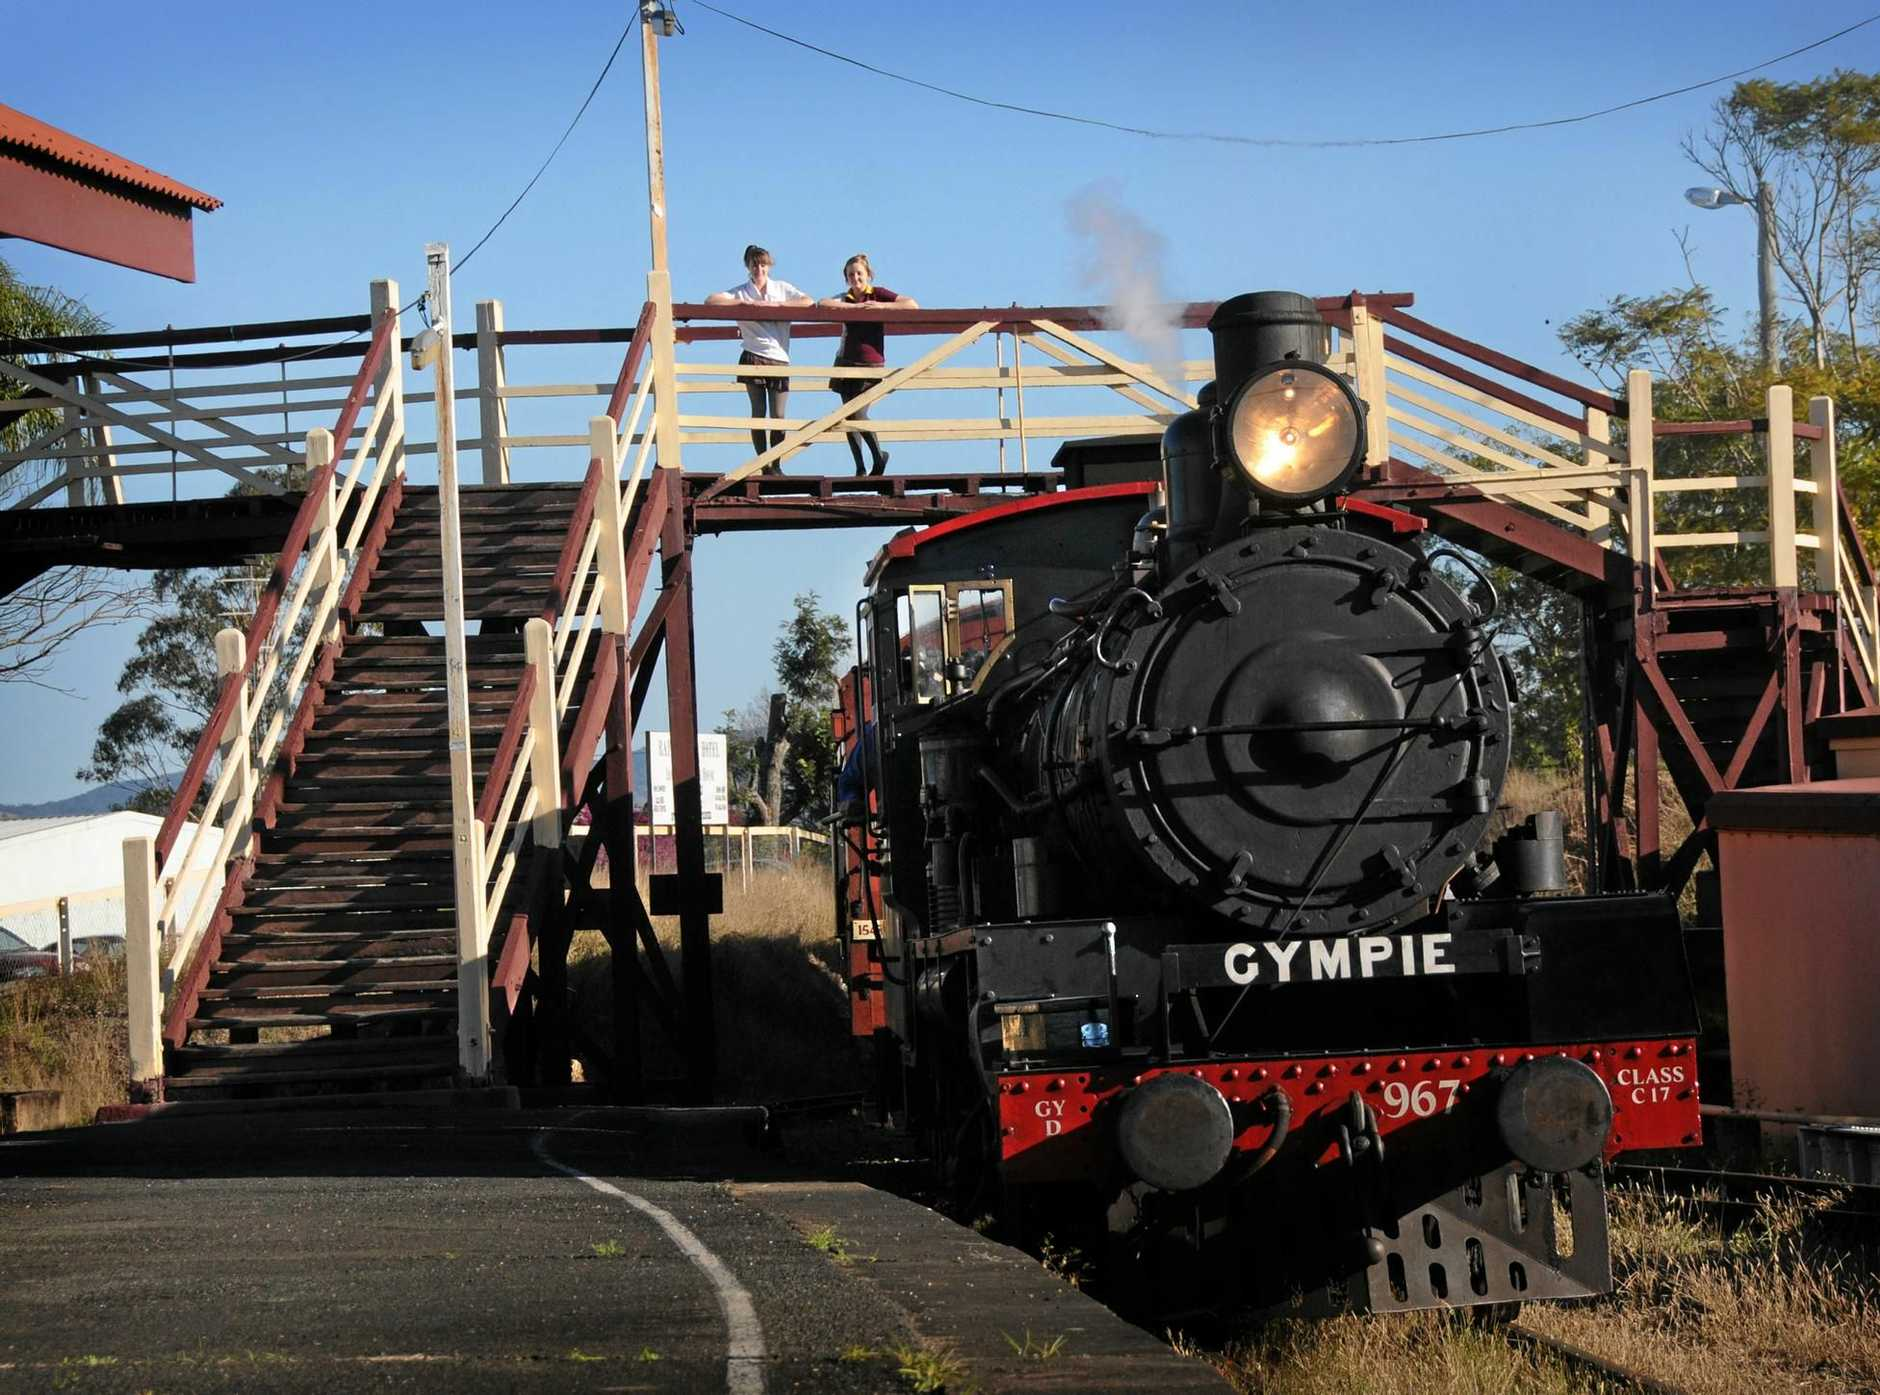 NEXT TO GO? Department of Transport and Main Road is now working with the Rattler Railway Company in assessing the safety of the bridge at Gympie railway station.